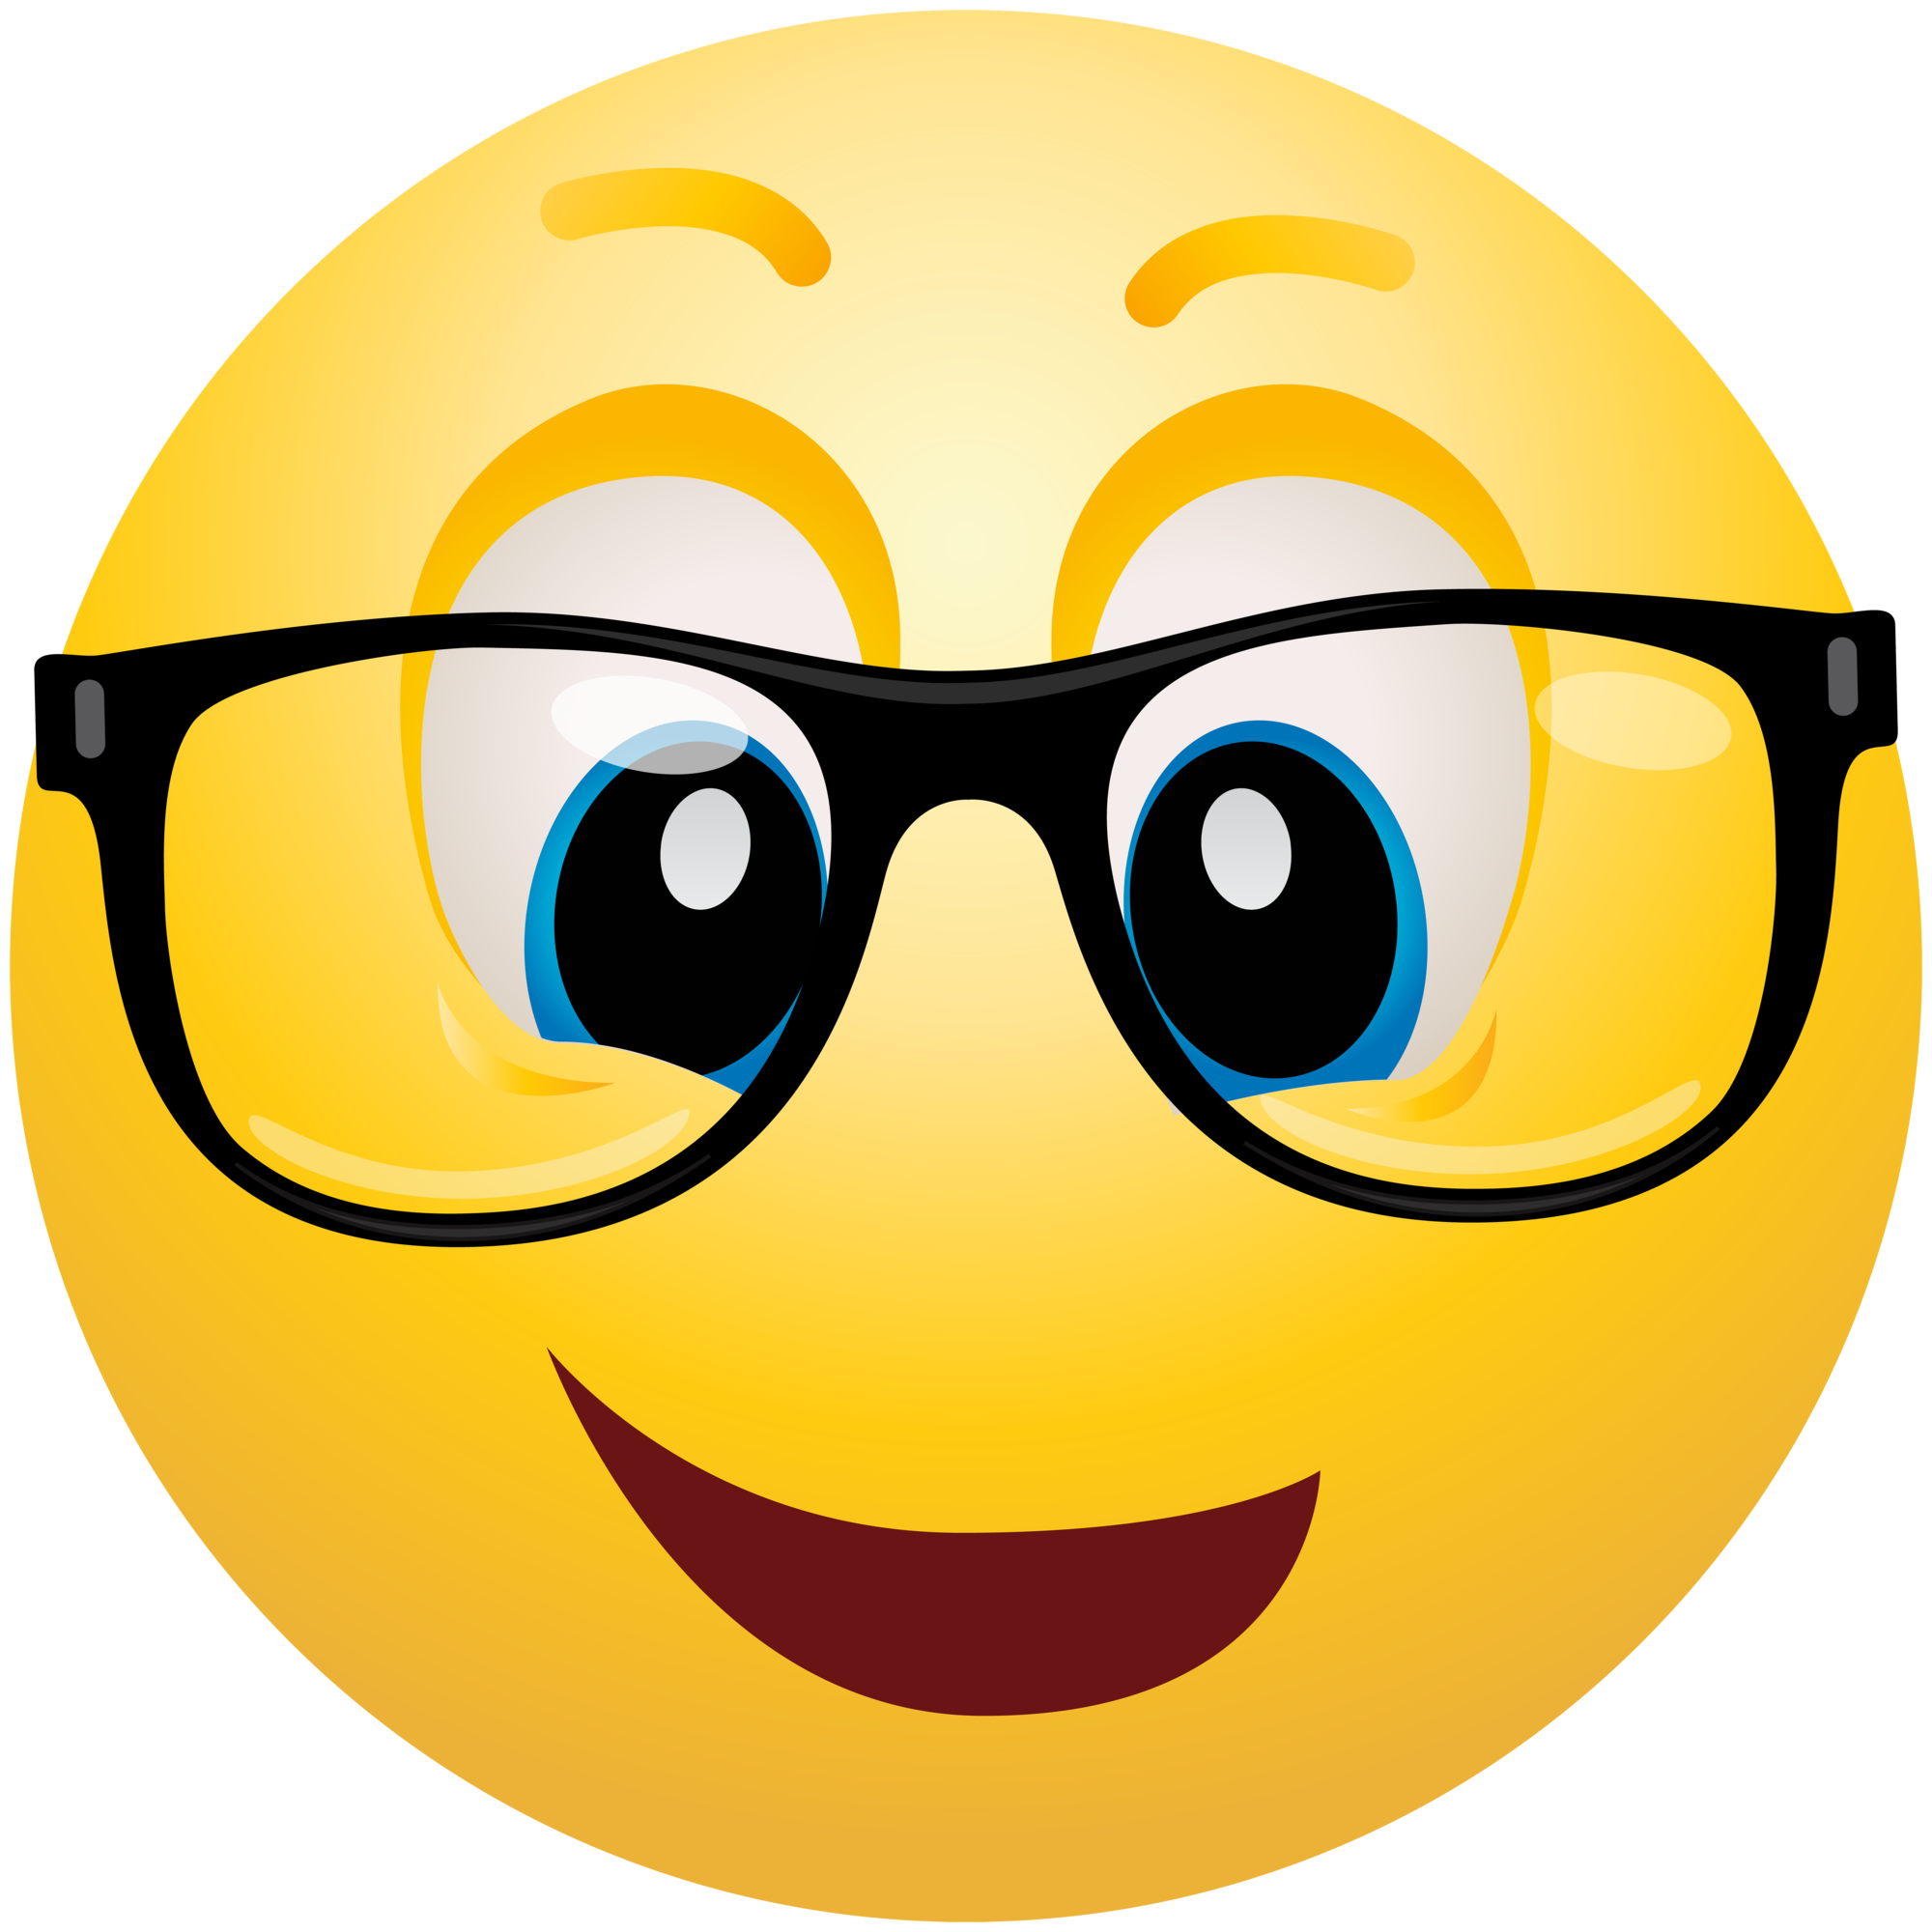 2000x2000 Geek Emoticon Emoji Clipart Info